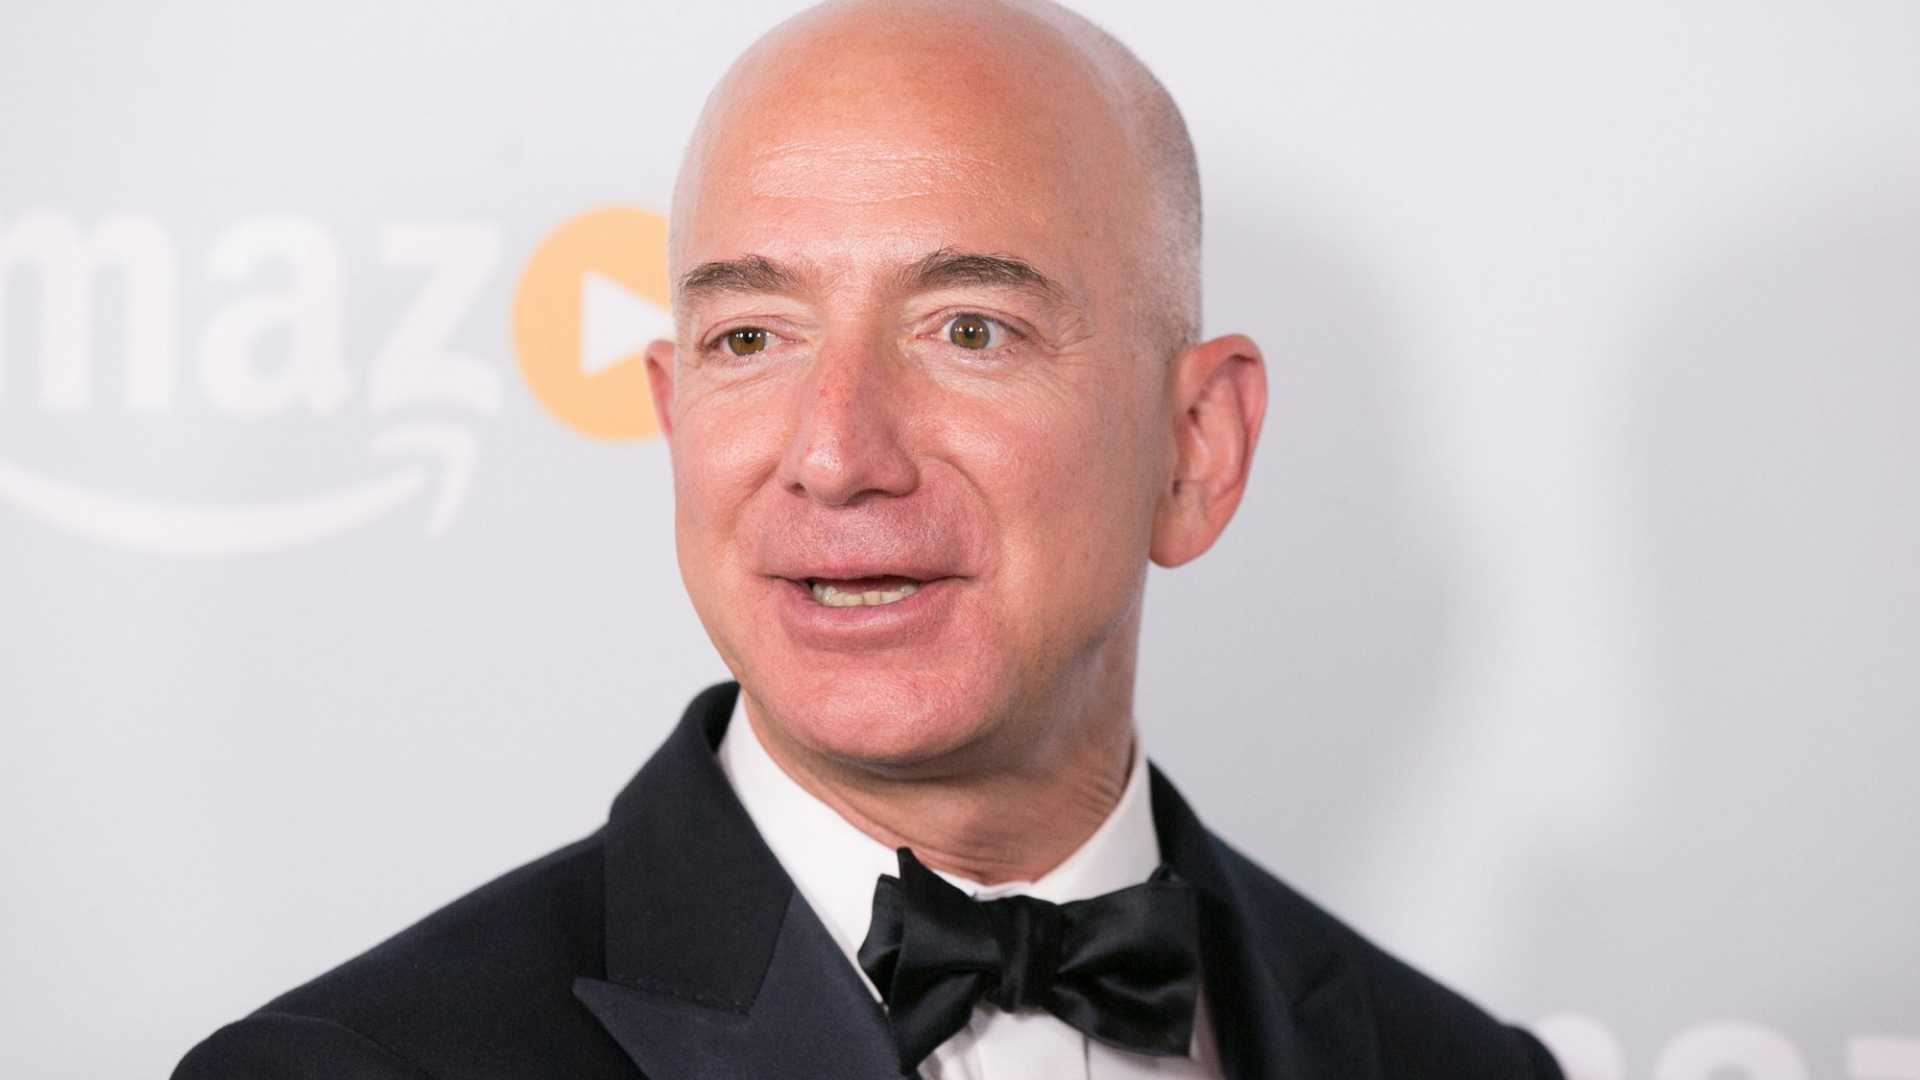 Amazon Opens Amazon 4-Star, a Physical Store for Its Best-Selling Items